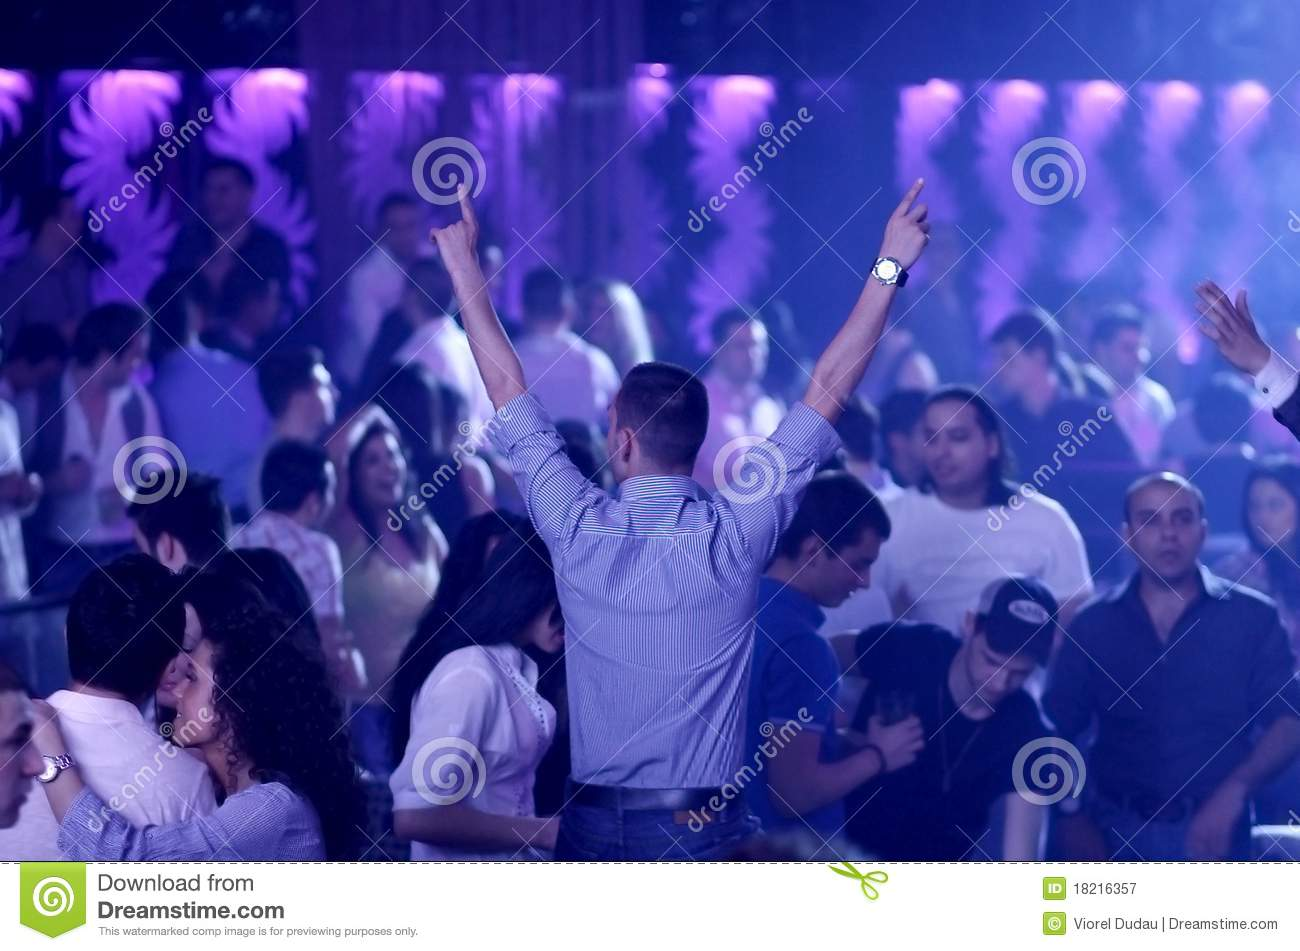 Hot party people in the nightclub (dancehall)